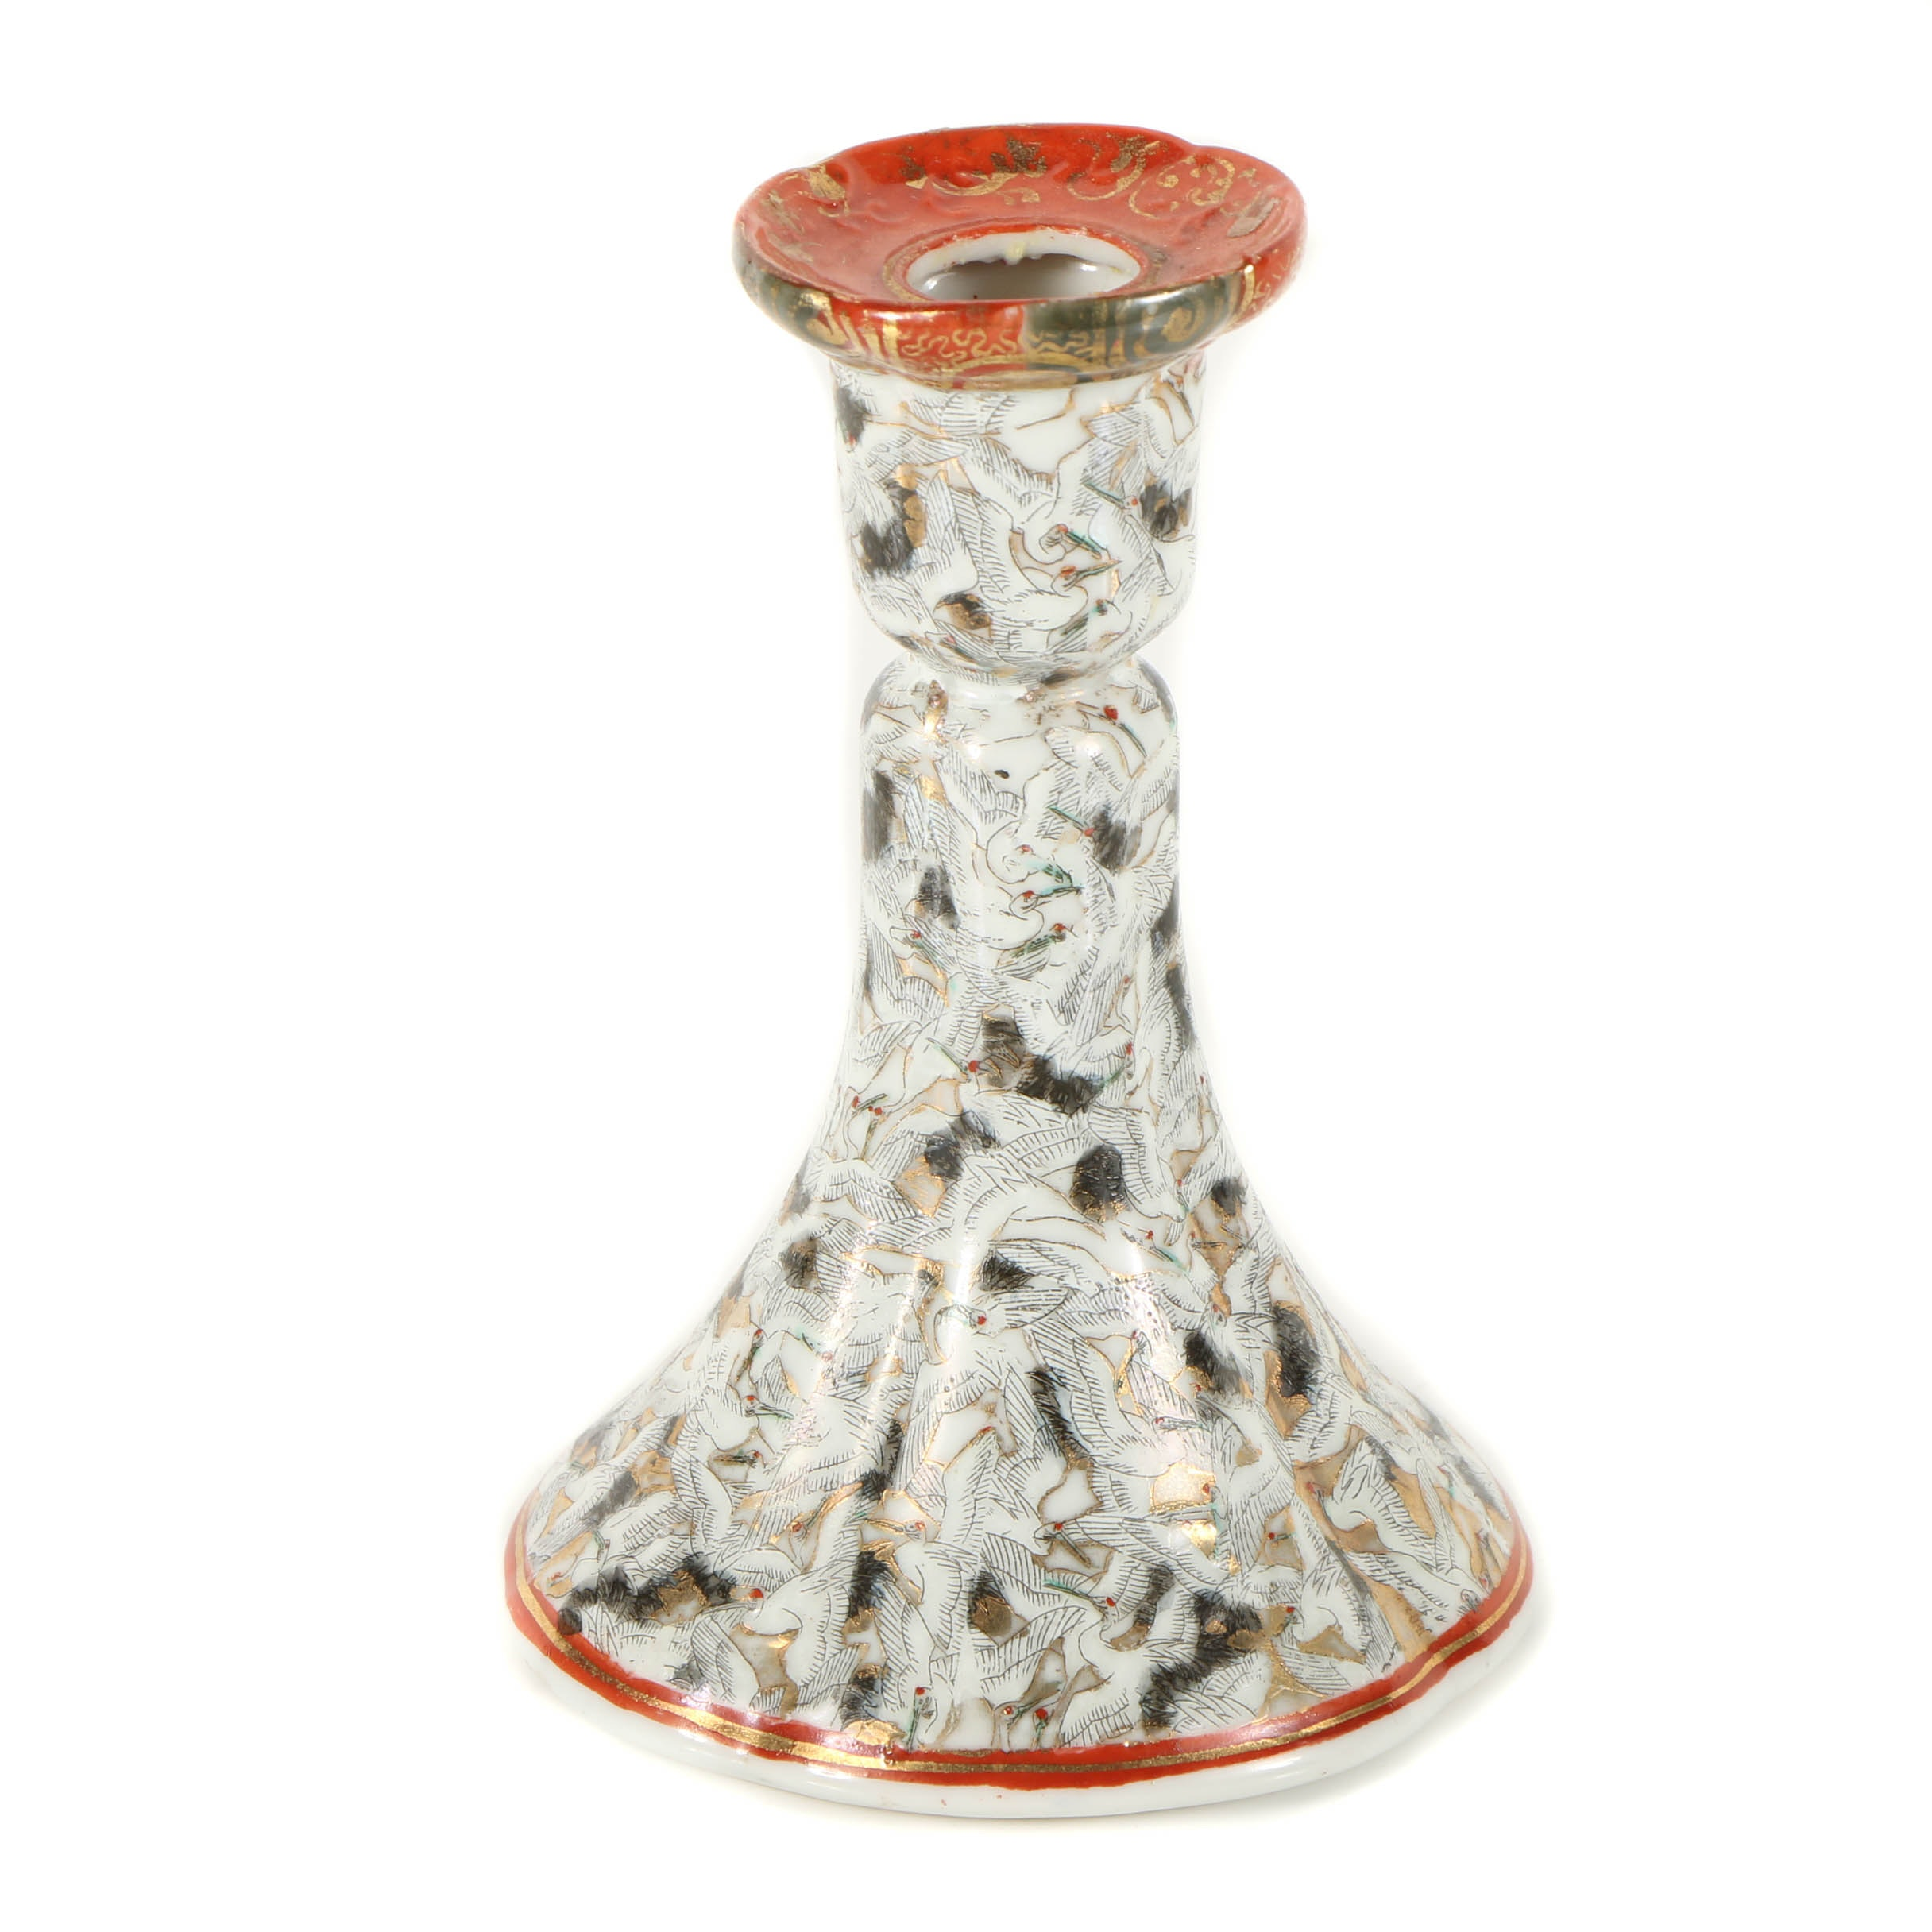 Japanese Porcelain Candlestick Holder with Crane Motif